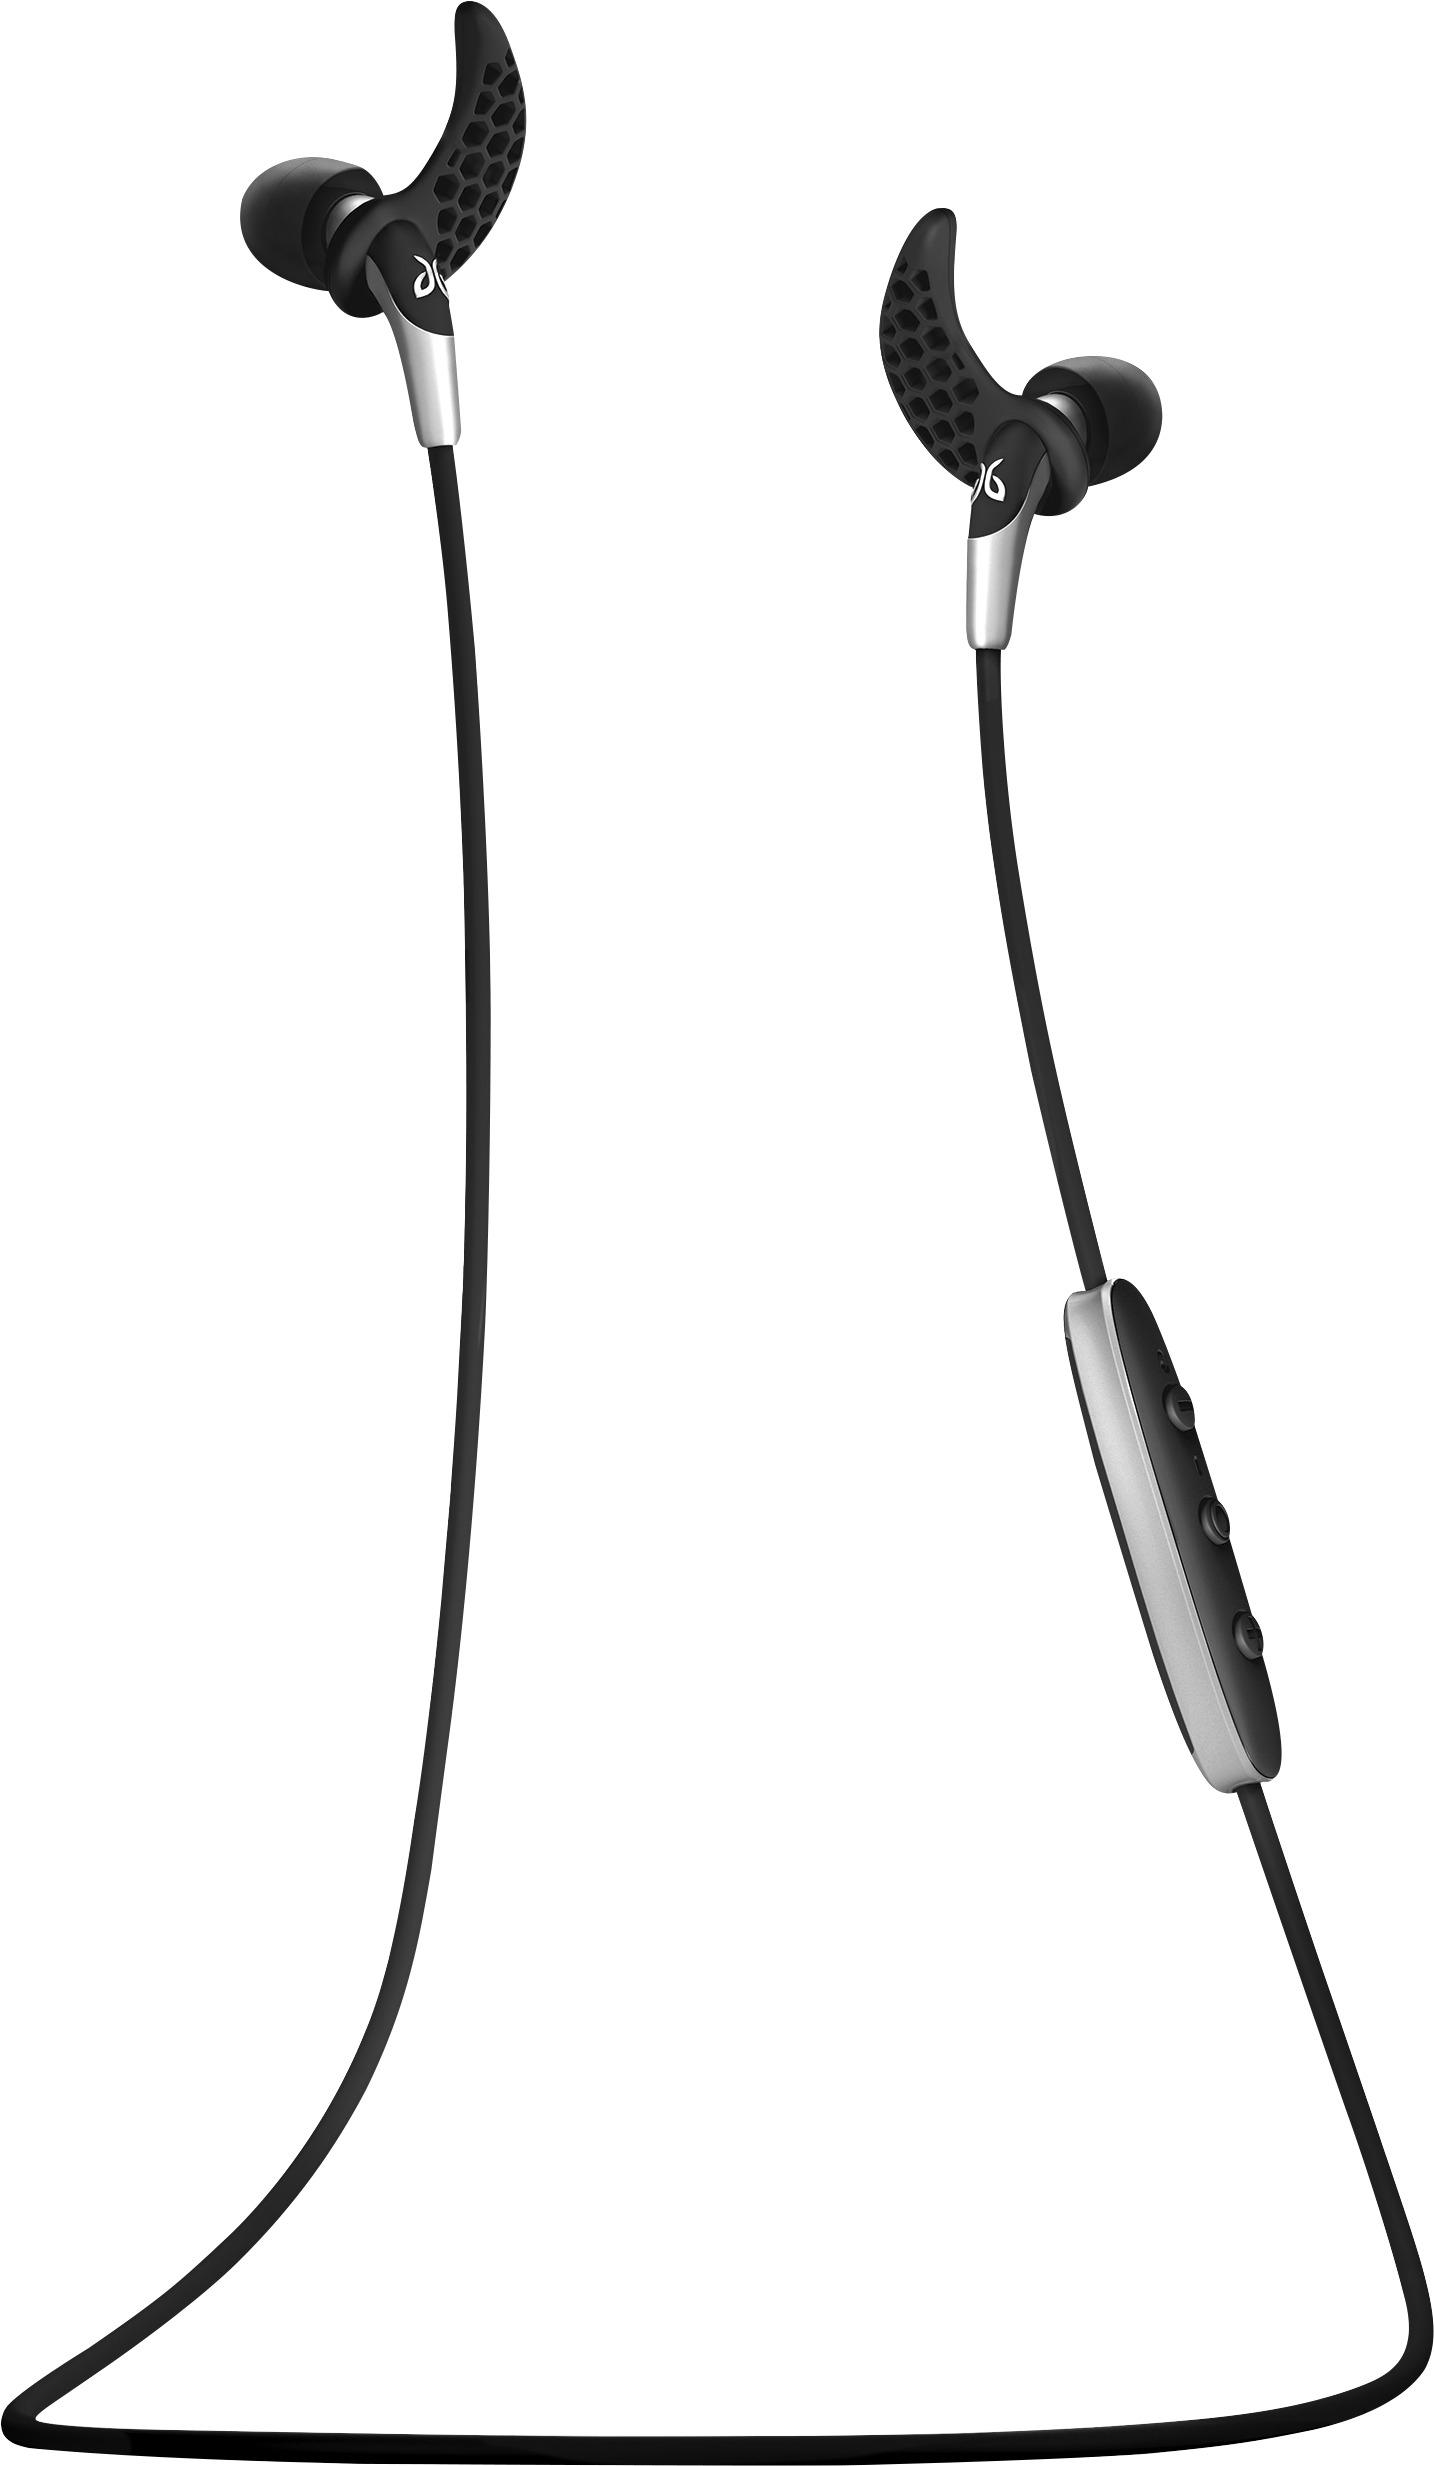 Best Buy: Jaybird Freedom F5 Wireless In-Ear Headphones